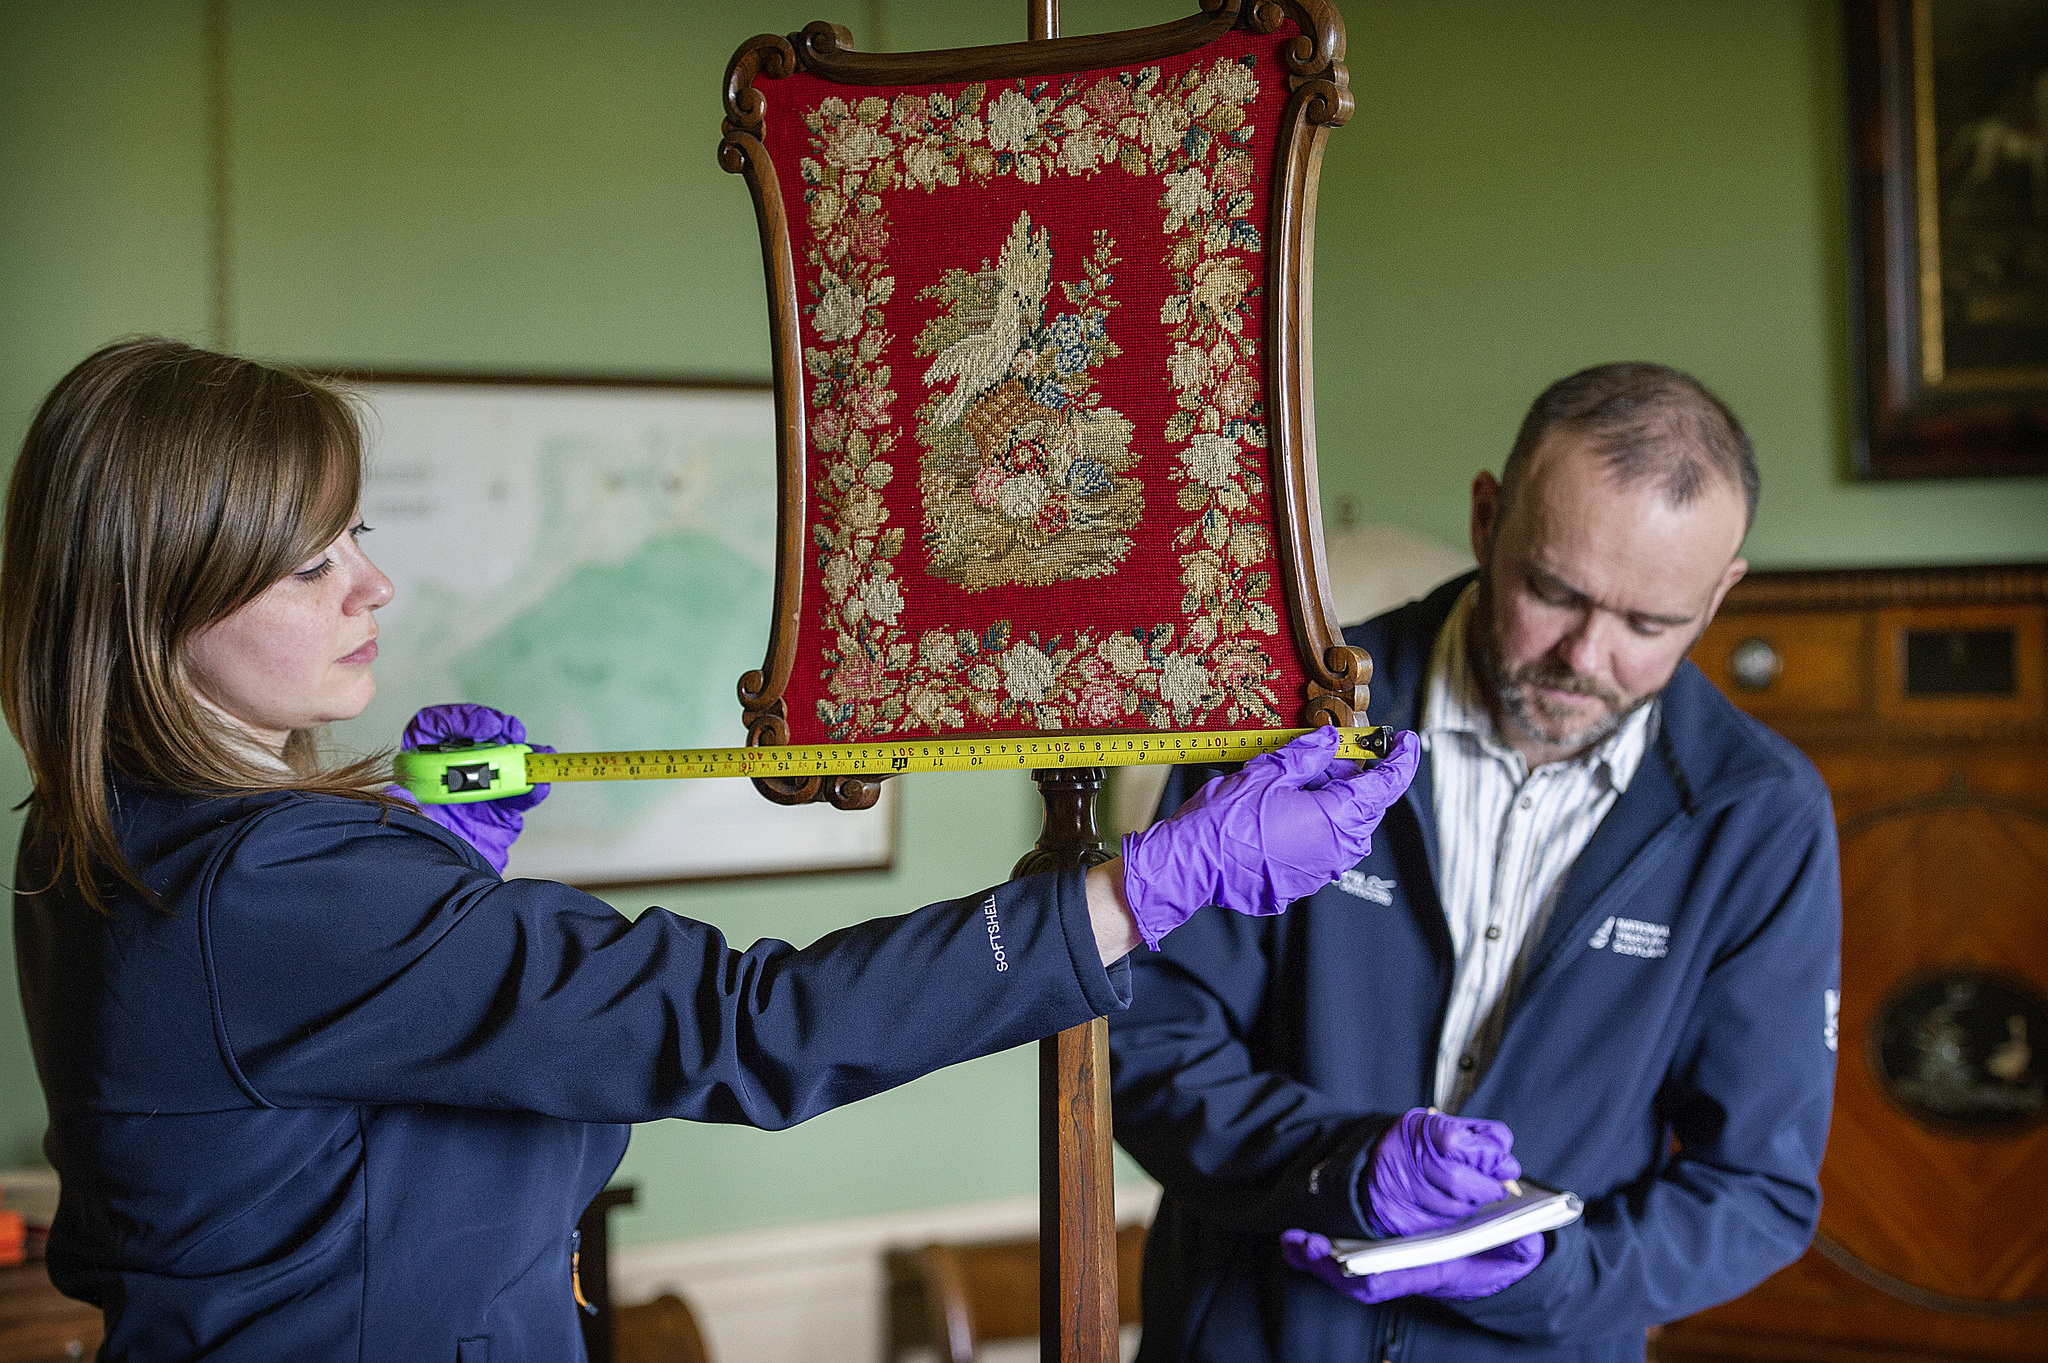 Sarah Heaton, Team manager for West, with John MacKenzie, National Trust for Scotland team manager reveal inventory project, South West. (Peter Sandground)